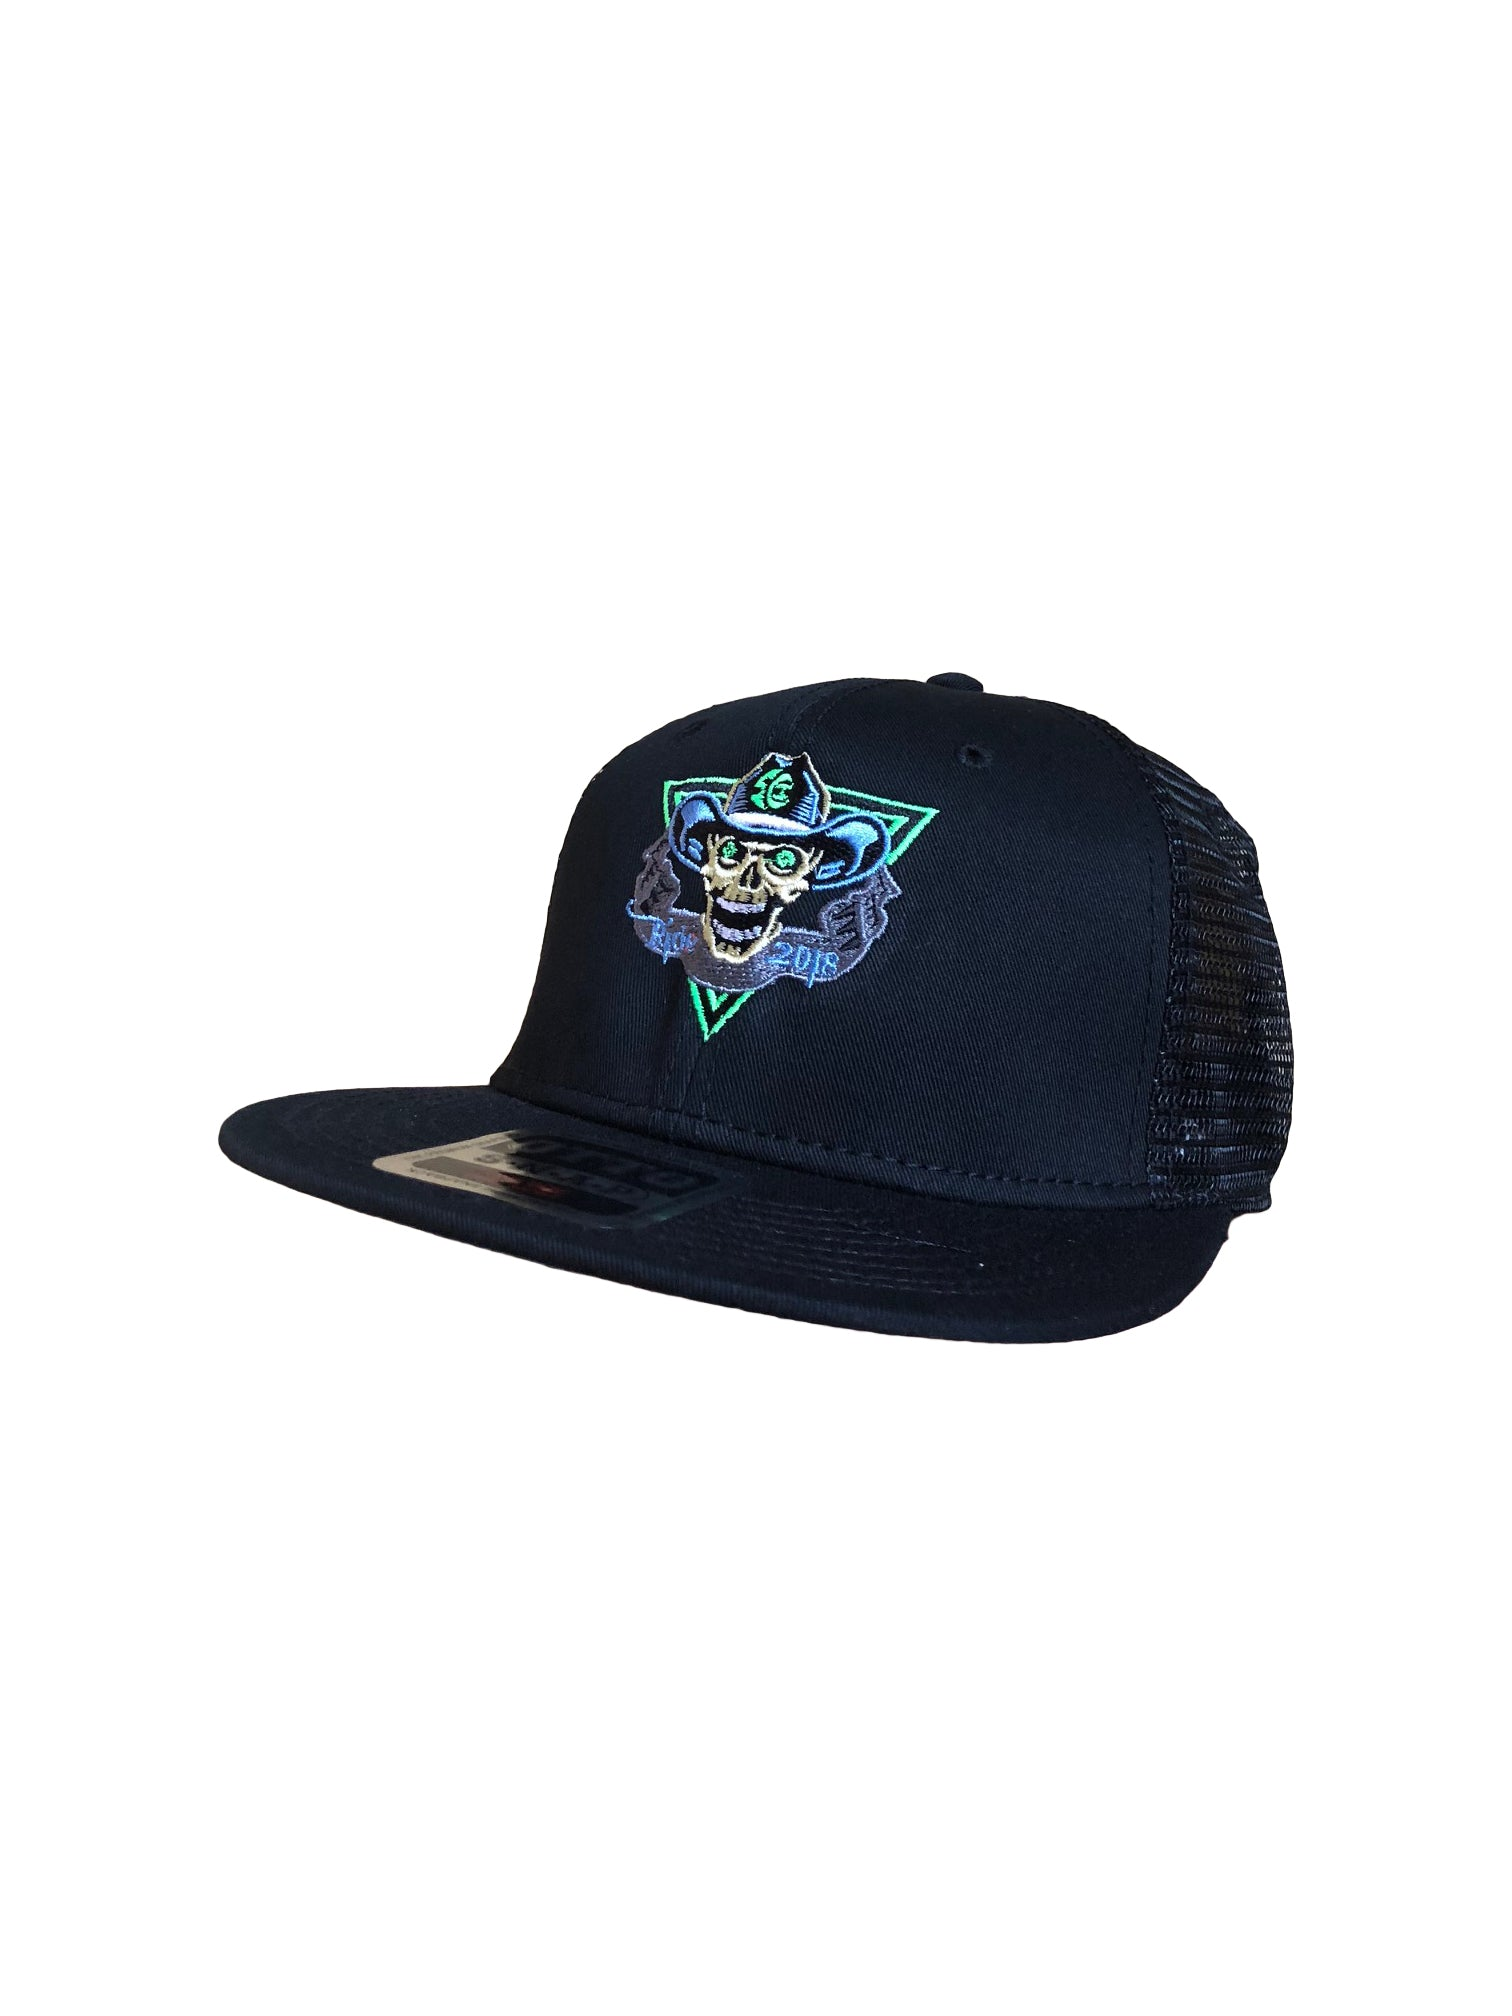 2018 To Hell U Ride Otto Trucker Hat Black Solid Front with Black Mesh Back Adjustable Flap One Size Fits All Side